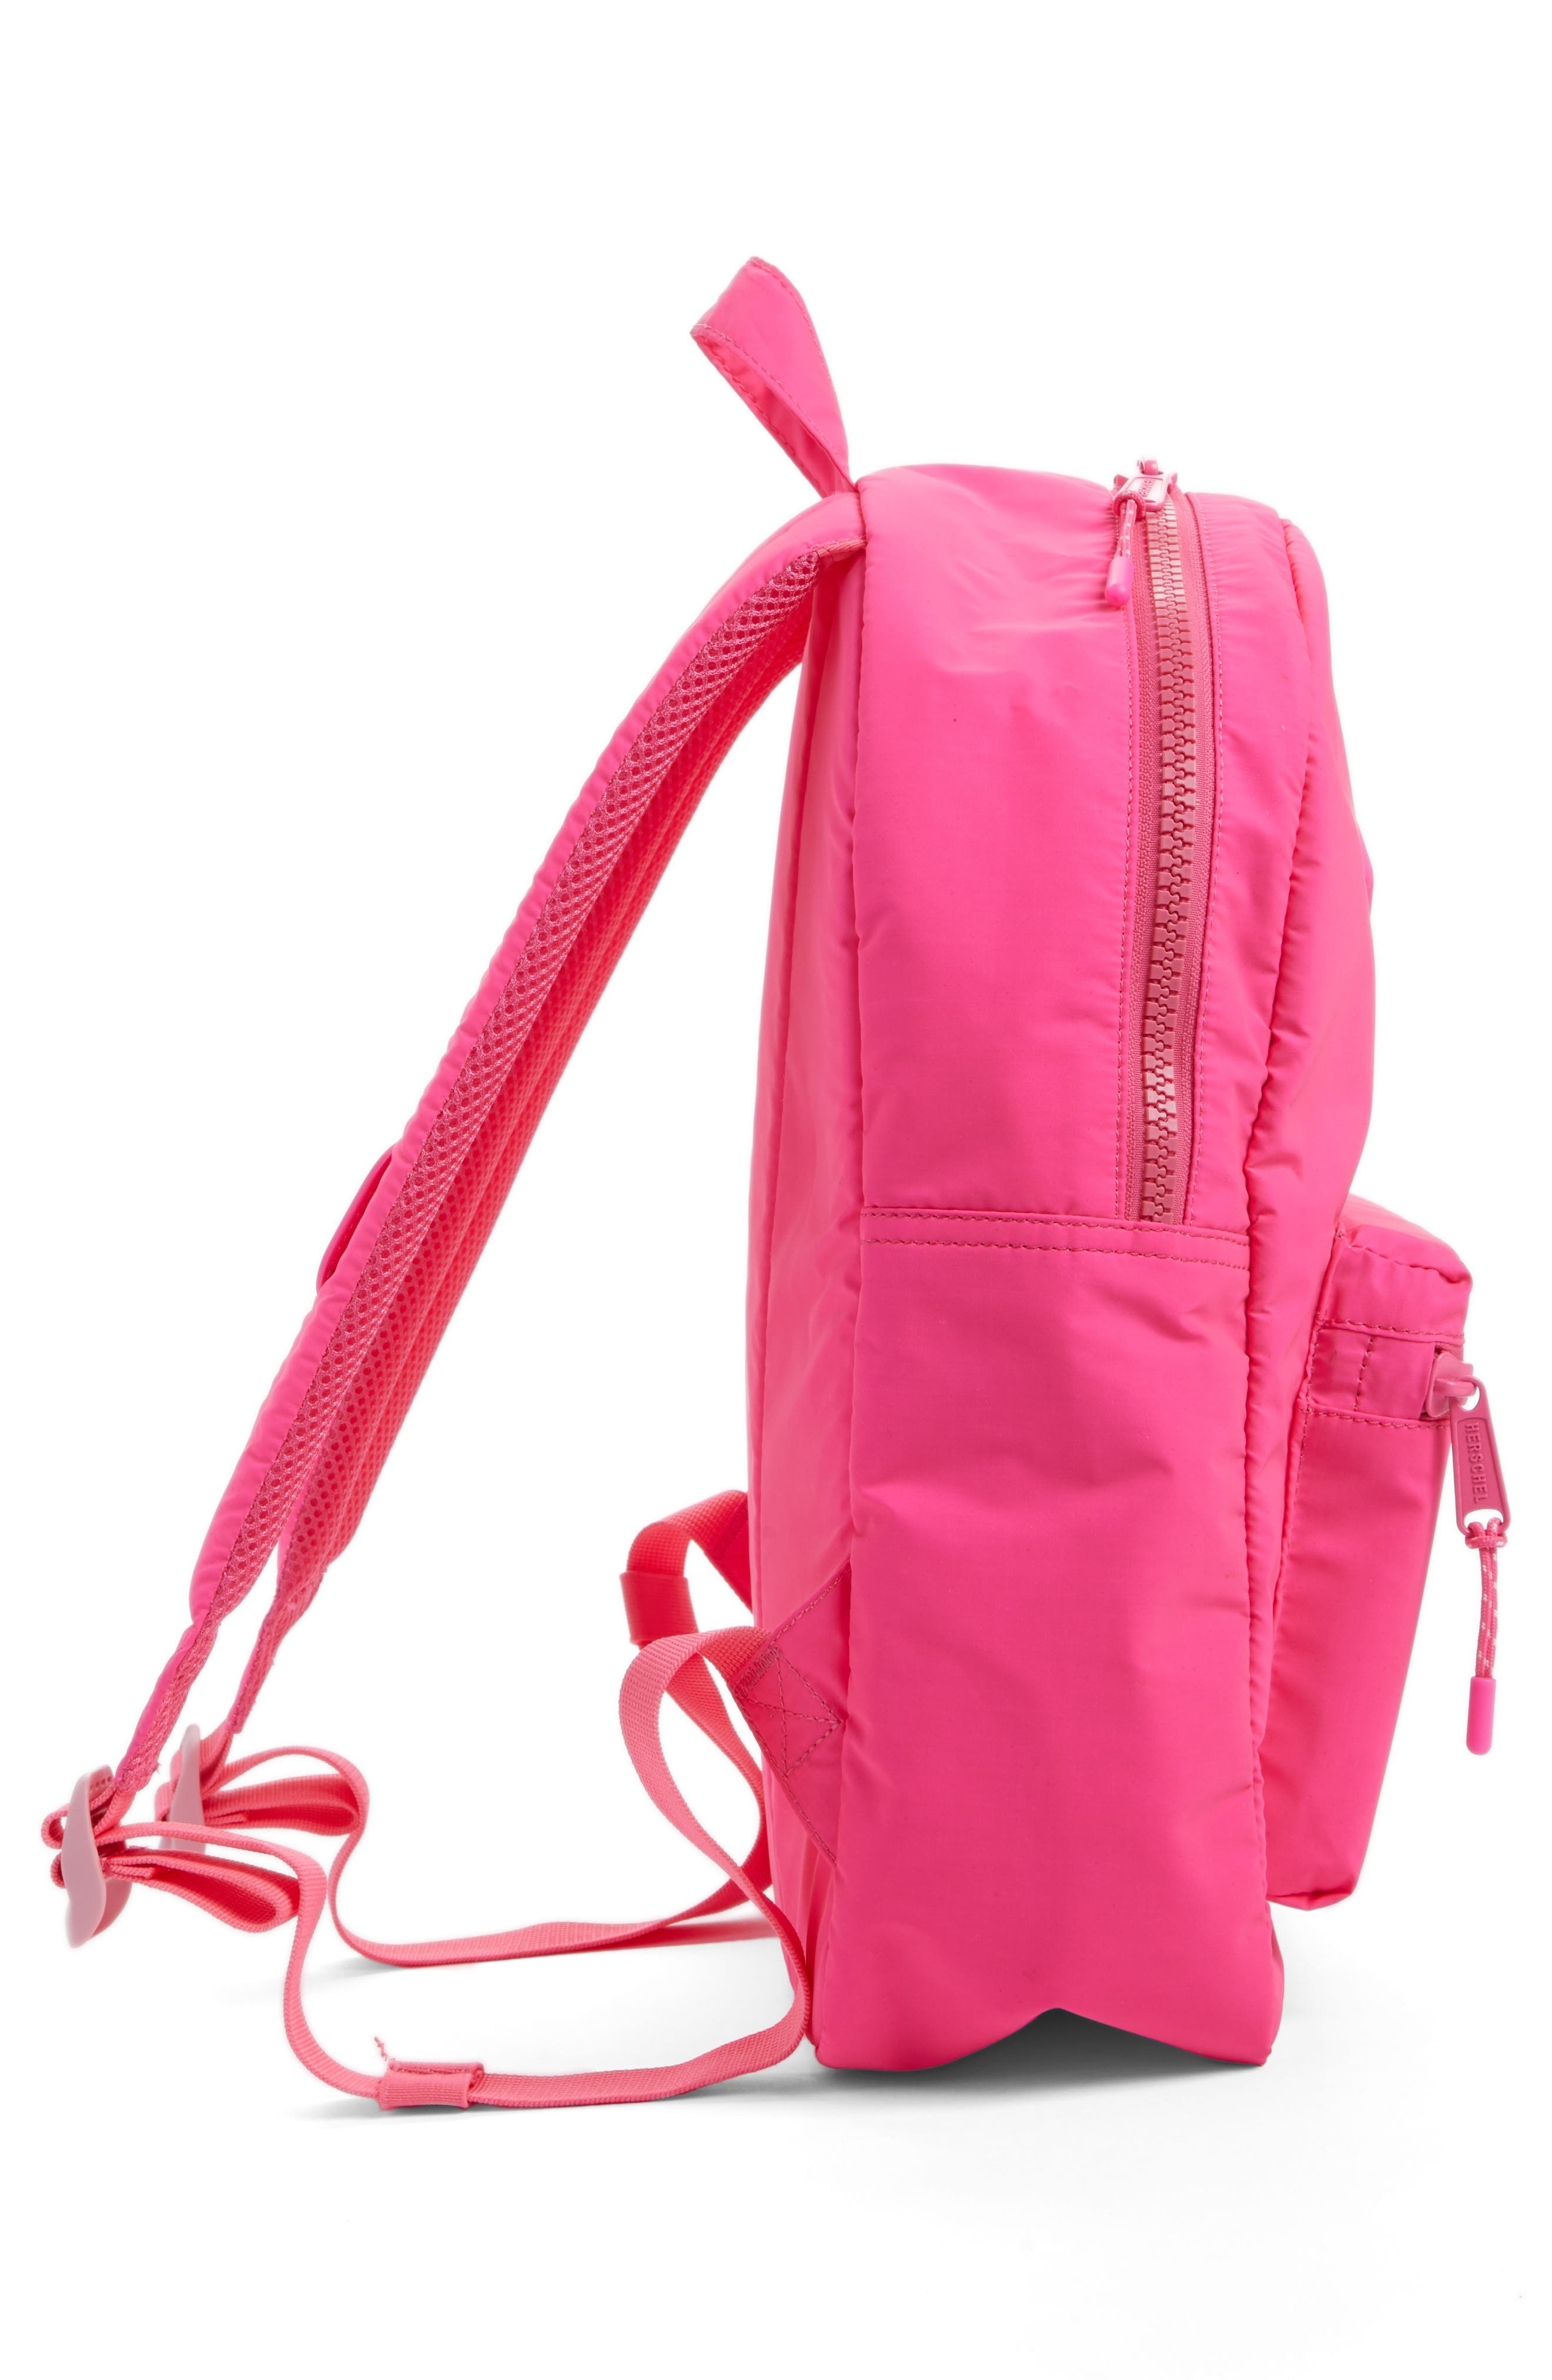 Heritage Backpack,                             Alternate thumbnail 4, color,                             Neon Pink Rubber